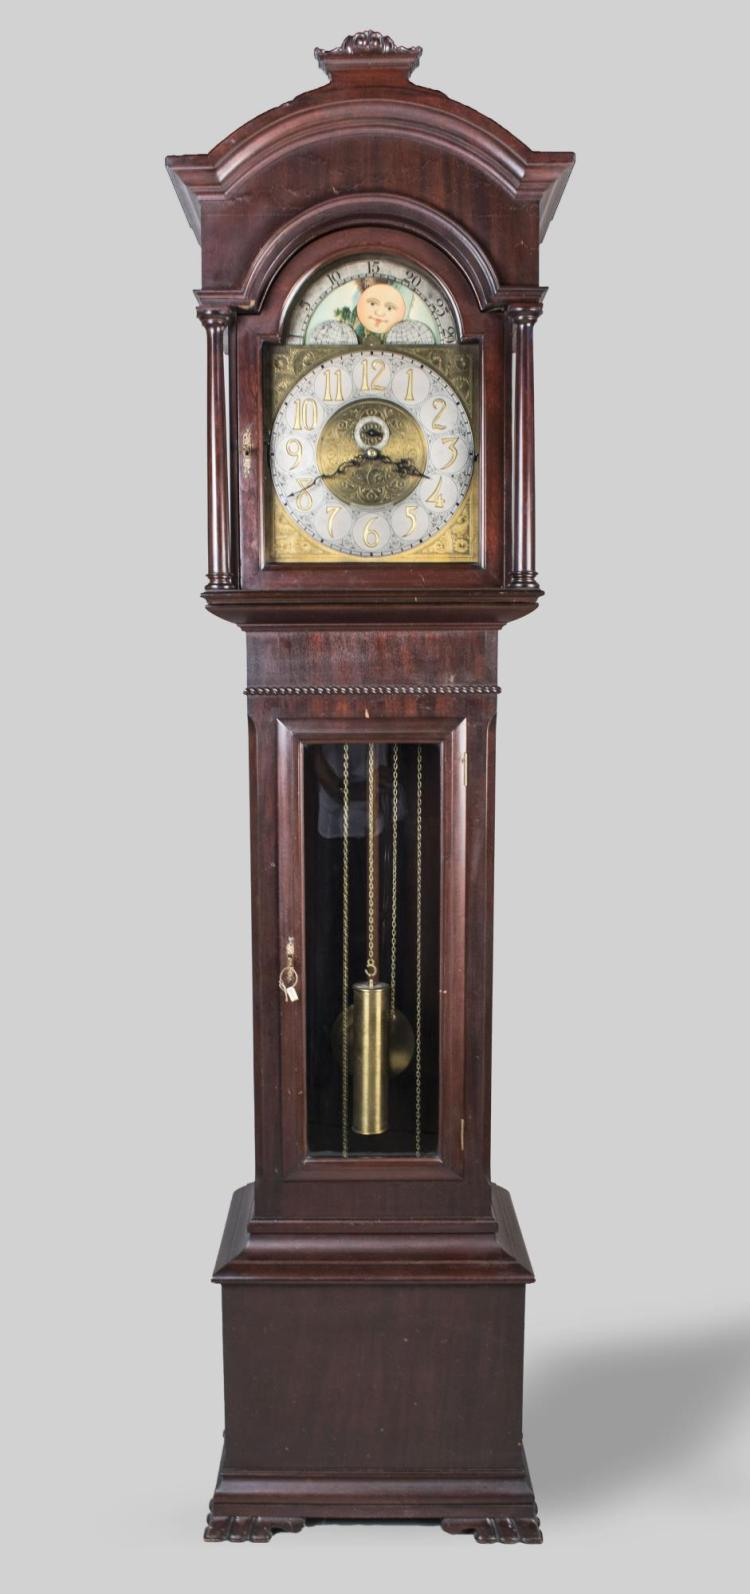 Tiffany & Co. Grandfather Clock